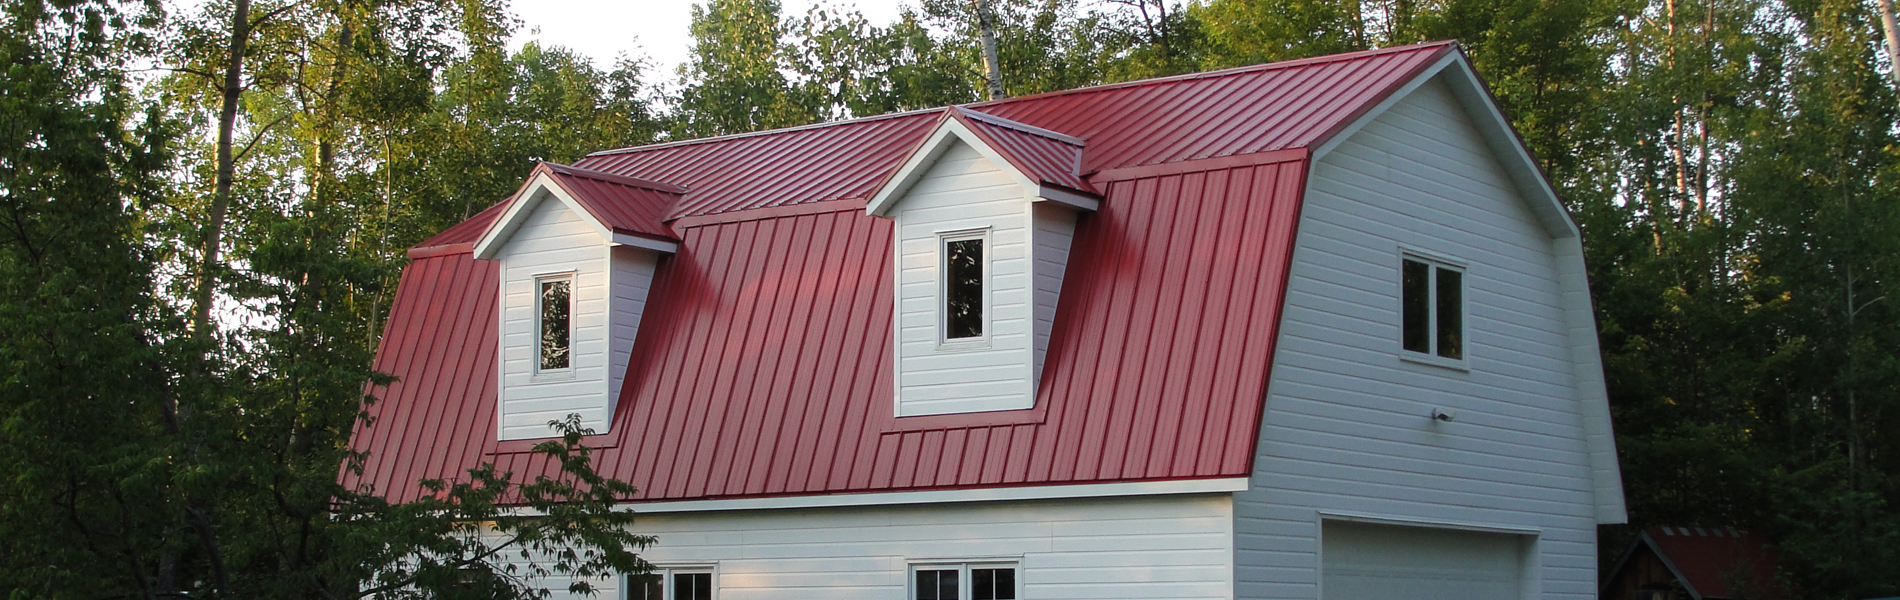 White Top Roofing Inc